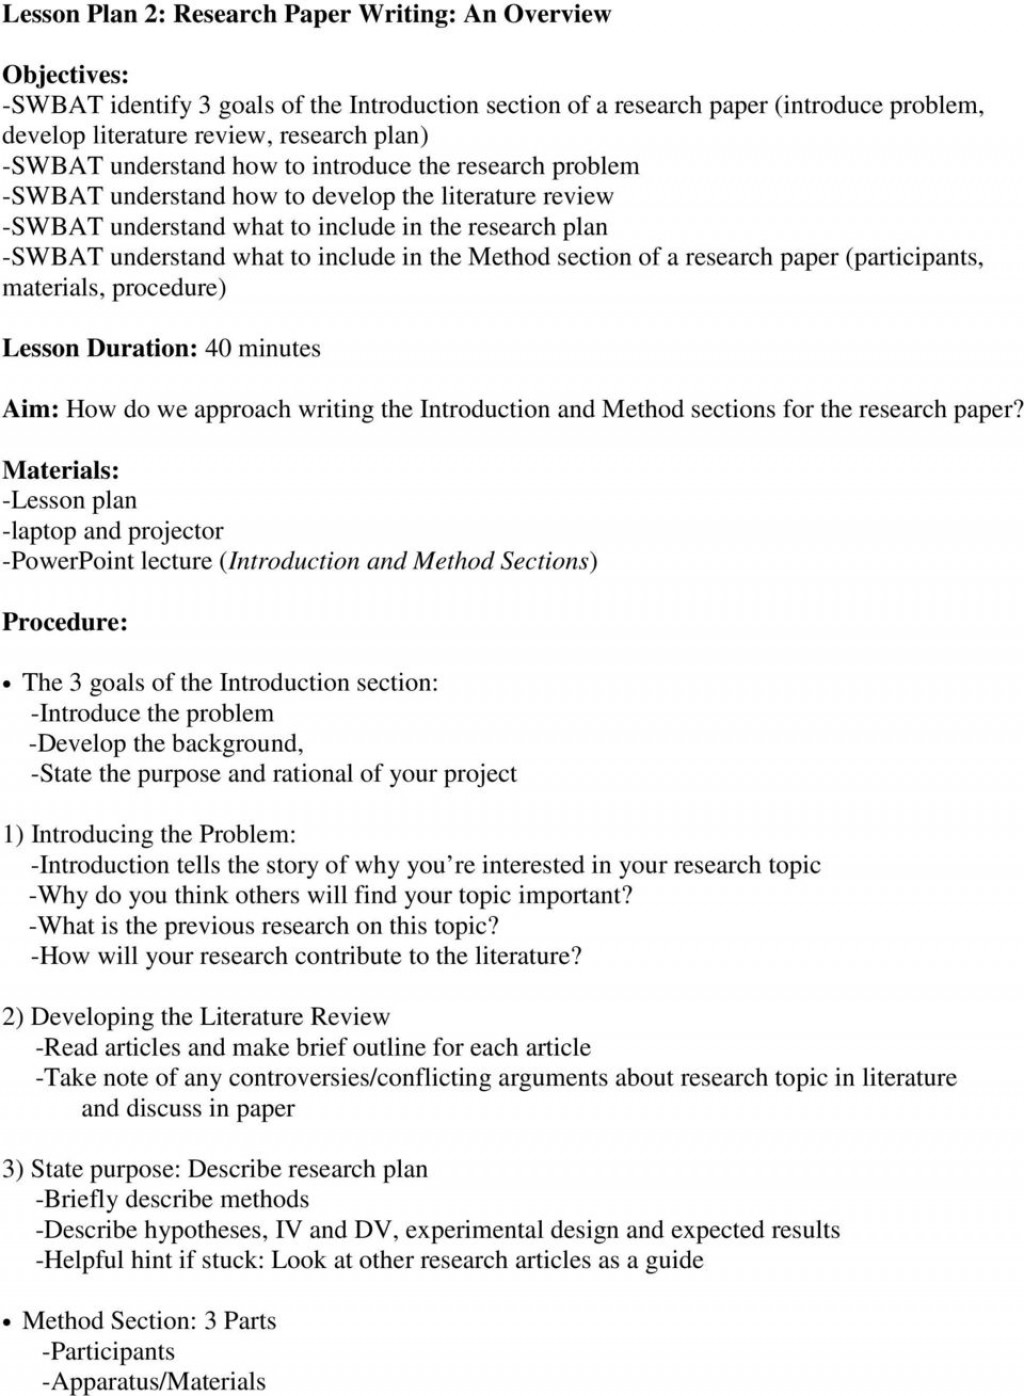 022 Research Paper Methods Section In Page 16 Sensational A Results Of Scientific Apa Example Pdf Large